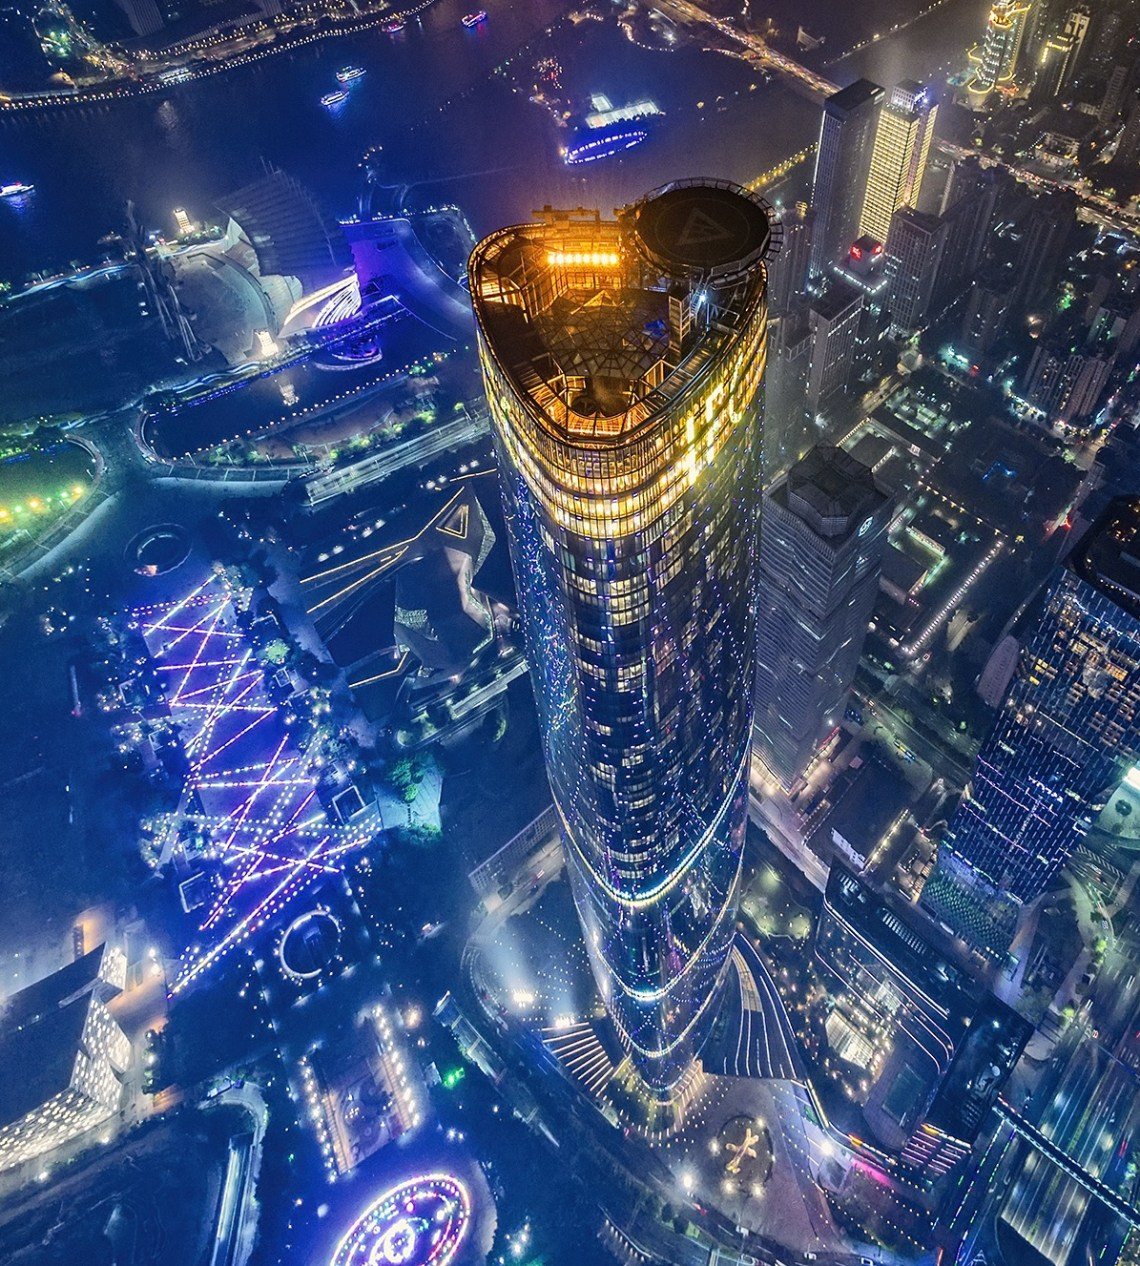 Guangzhou International Finance Center Is The Second Tallest Building And Third Structure In China It Stands 438 Meters